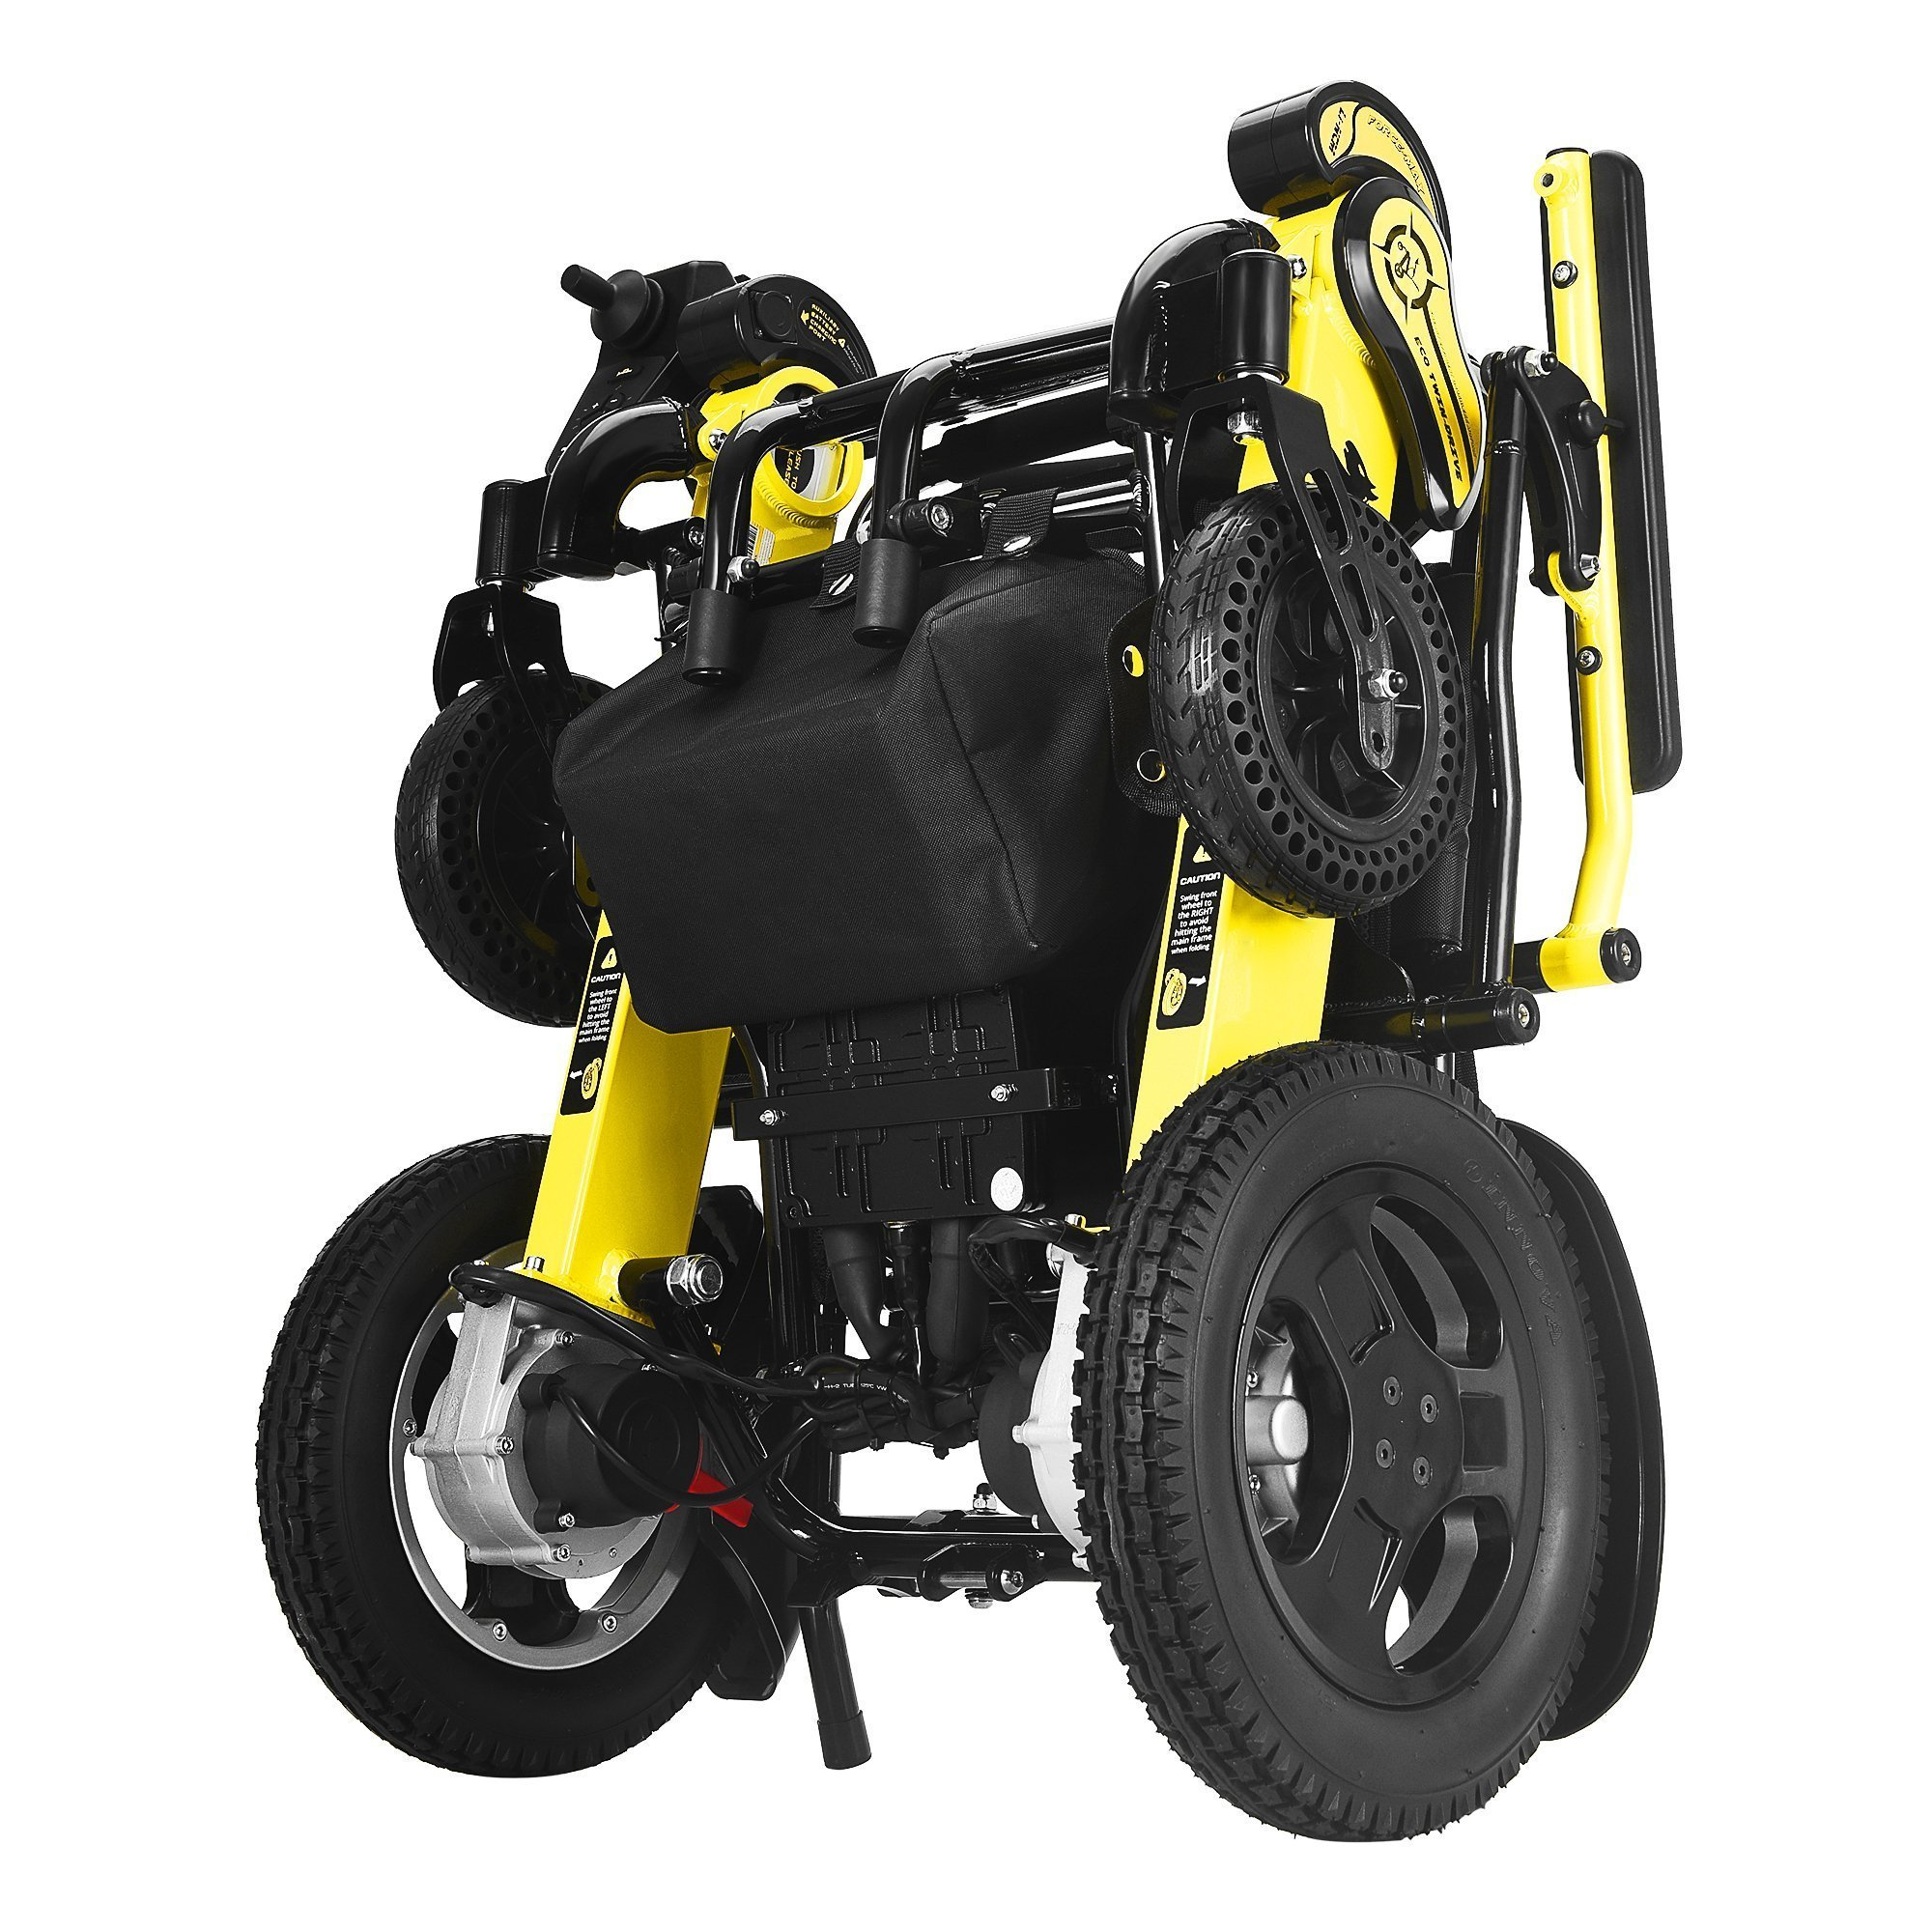 Foldable Sturdy Dual Motorized Powerful Electric Wheelchair Mobility Aids Ober Health 5